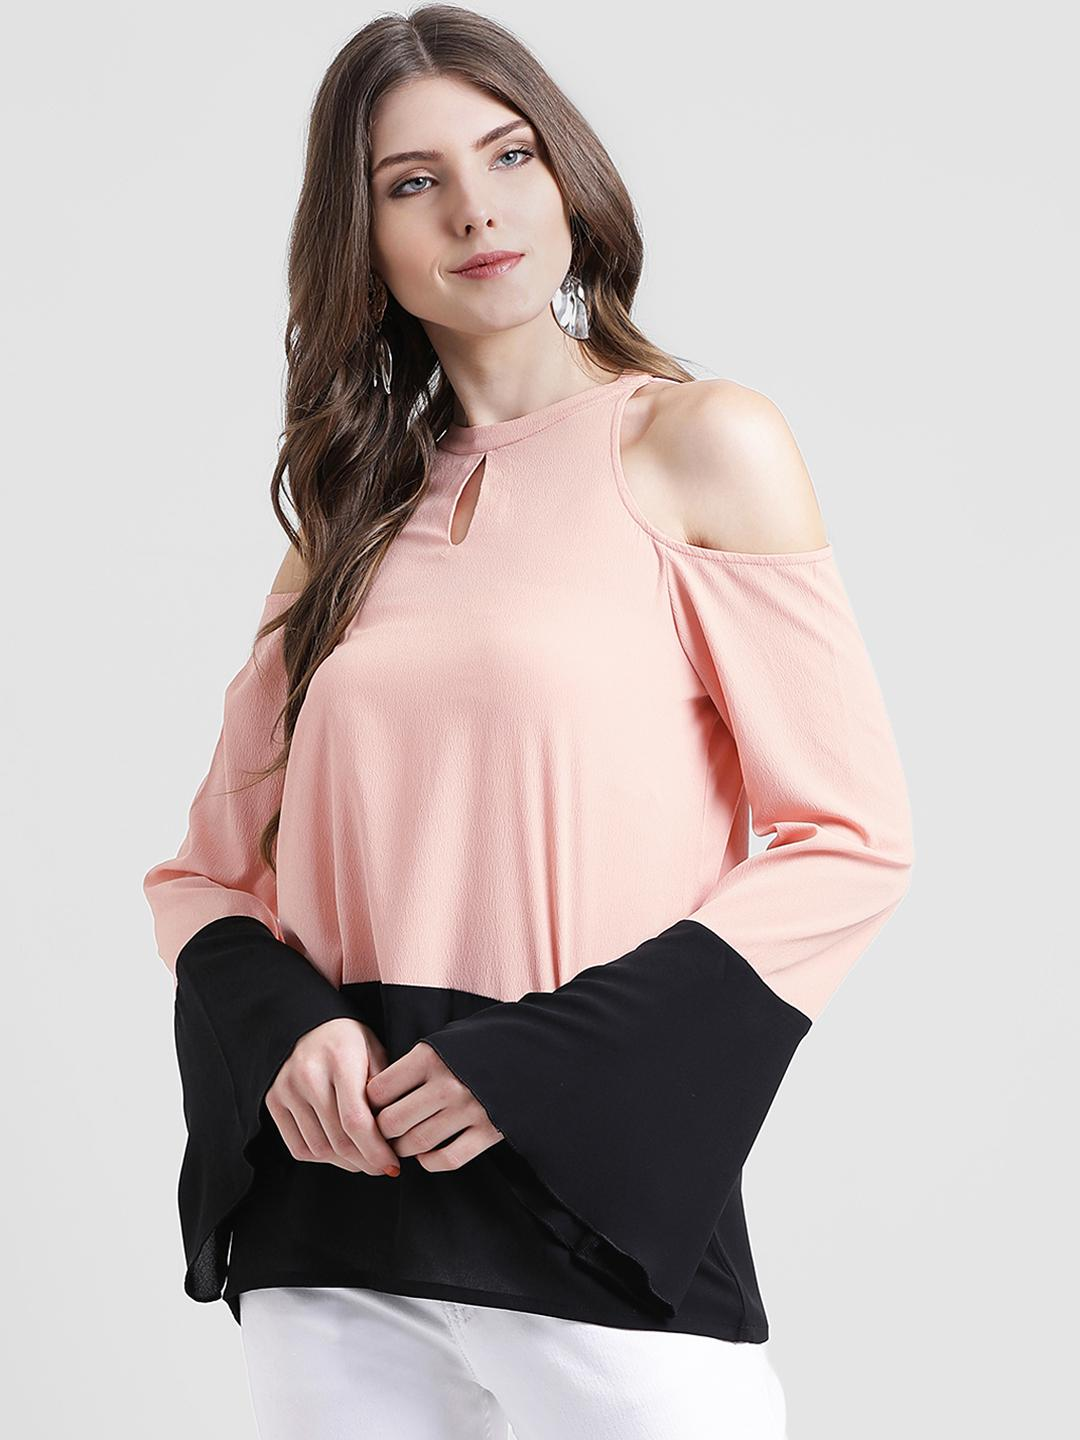 039d30adedd DESIGNER Pink Black Beautiful Stylish Attarctive Party CAsual Wear Top Shirt  Tunic Blouse For Women For